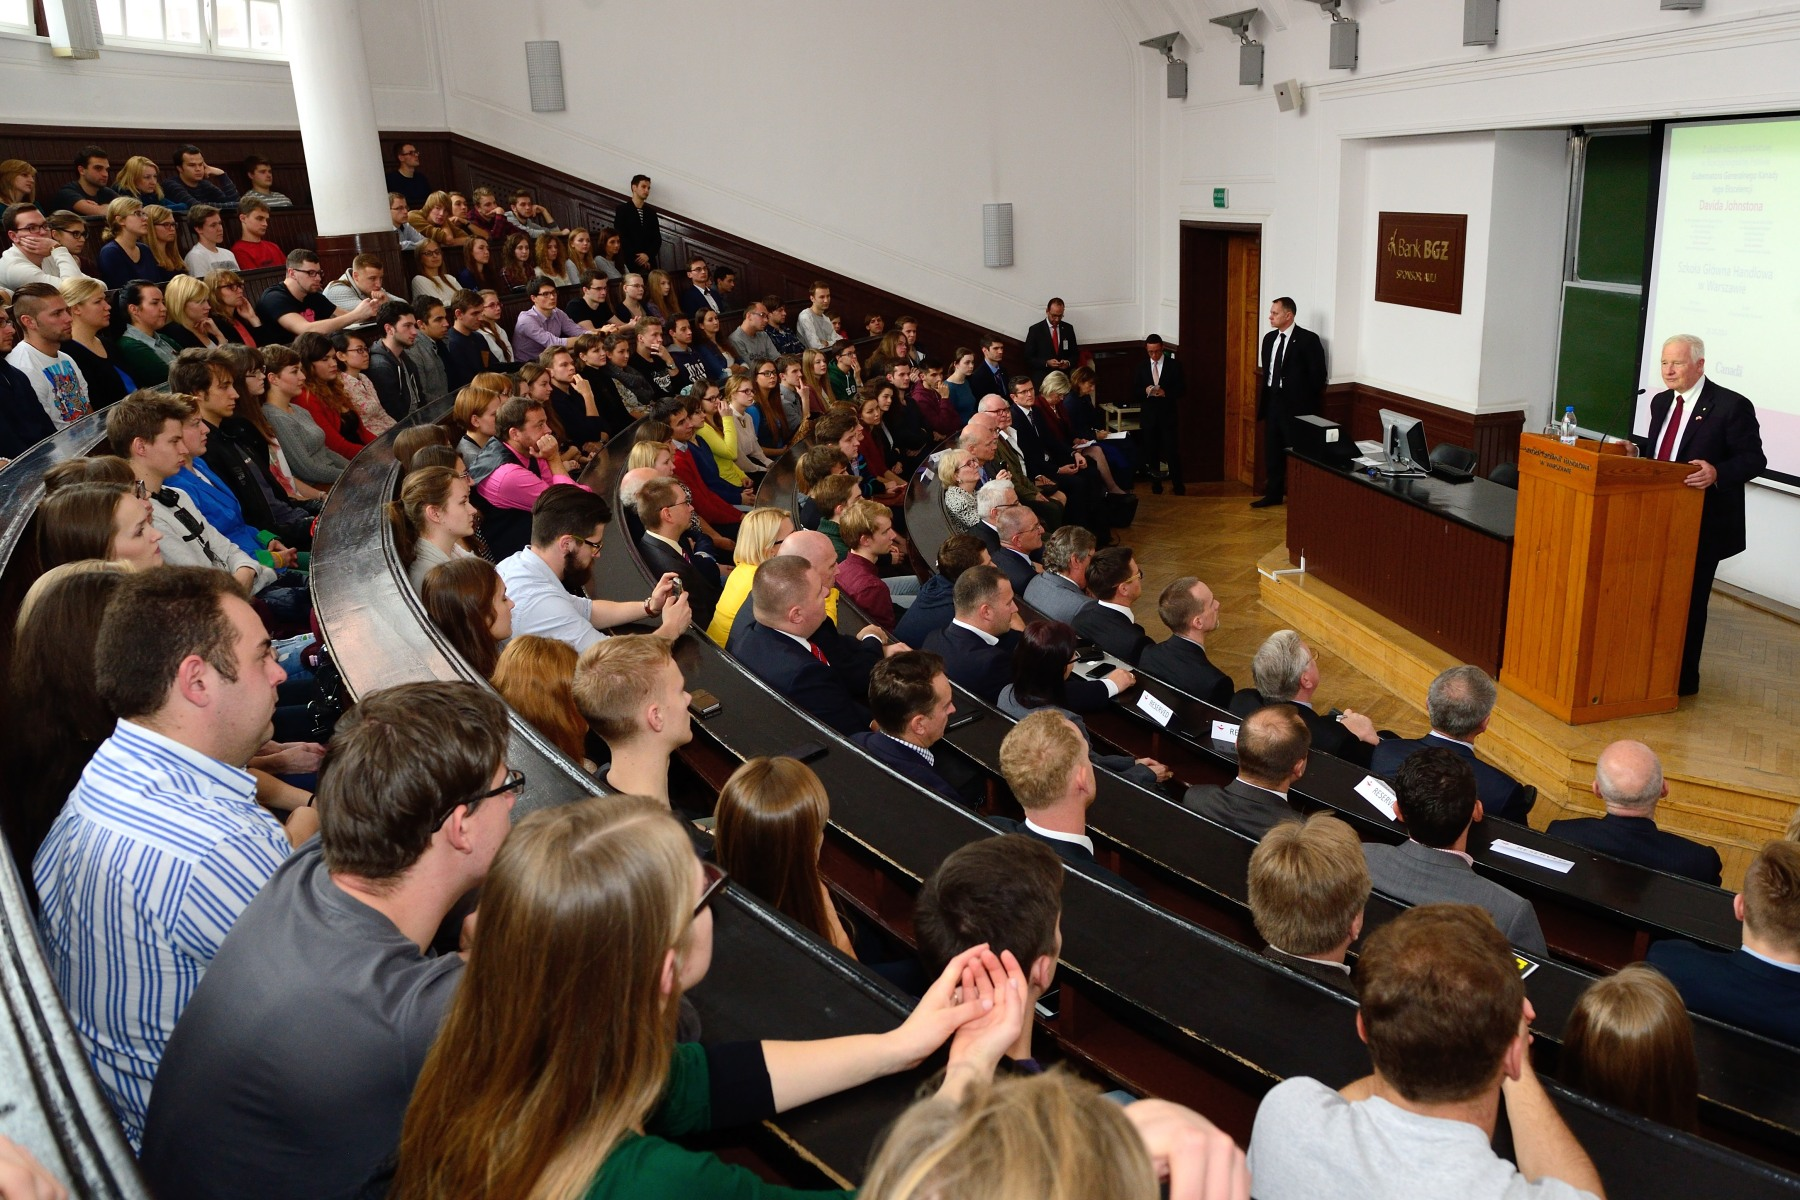 The Governor General then proceeded to Warsaw School of Economics to deliver a keynote address on the potential for greater collaboration between Canada and Poland in the spheres of education and innovation, and to encourage students to consider Canada as a study and research destination.